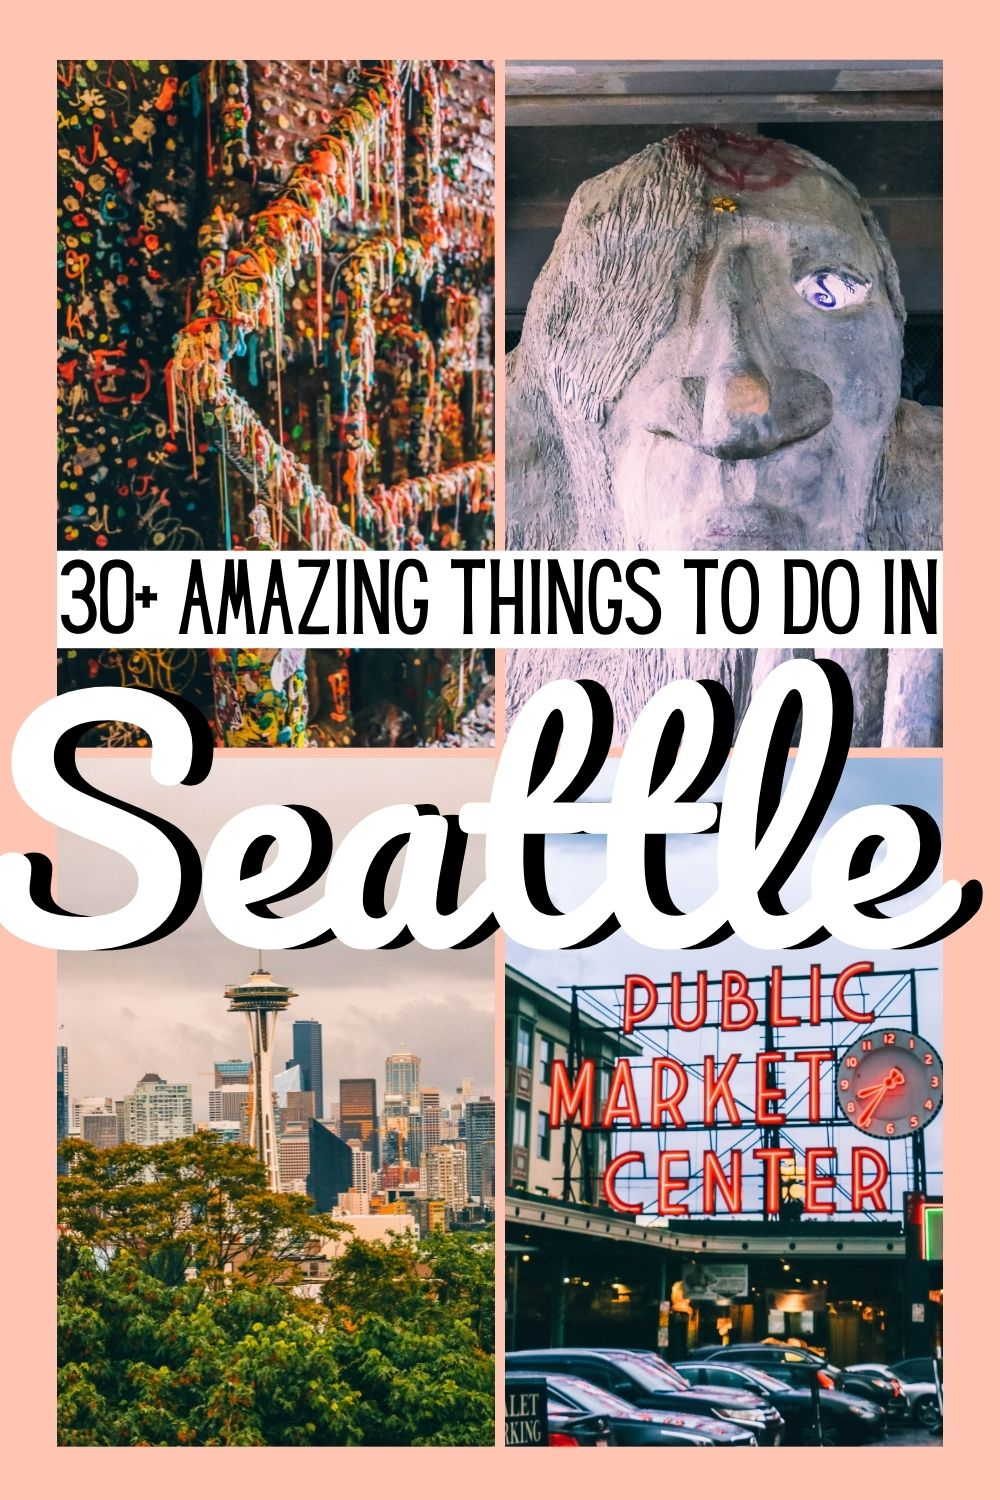 Seattle Travel Guide: Here's 30+ Things to Do in Seattle from where to visit, what tours to take and where to get a drink.